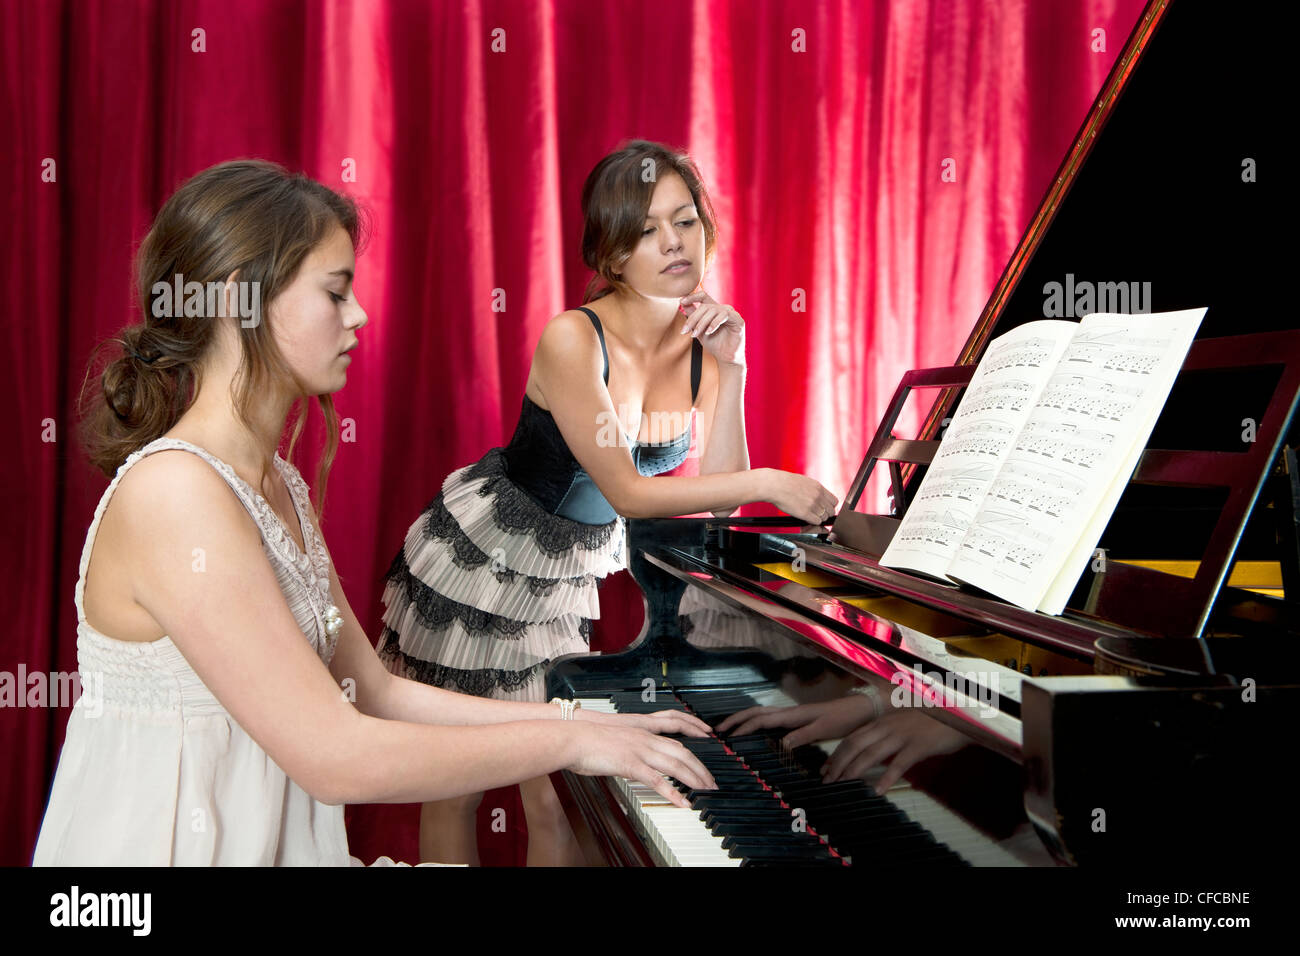 Duet with vocals and piano, performed by two young women on stage - Stock Image